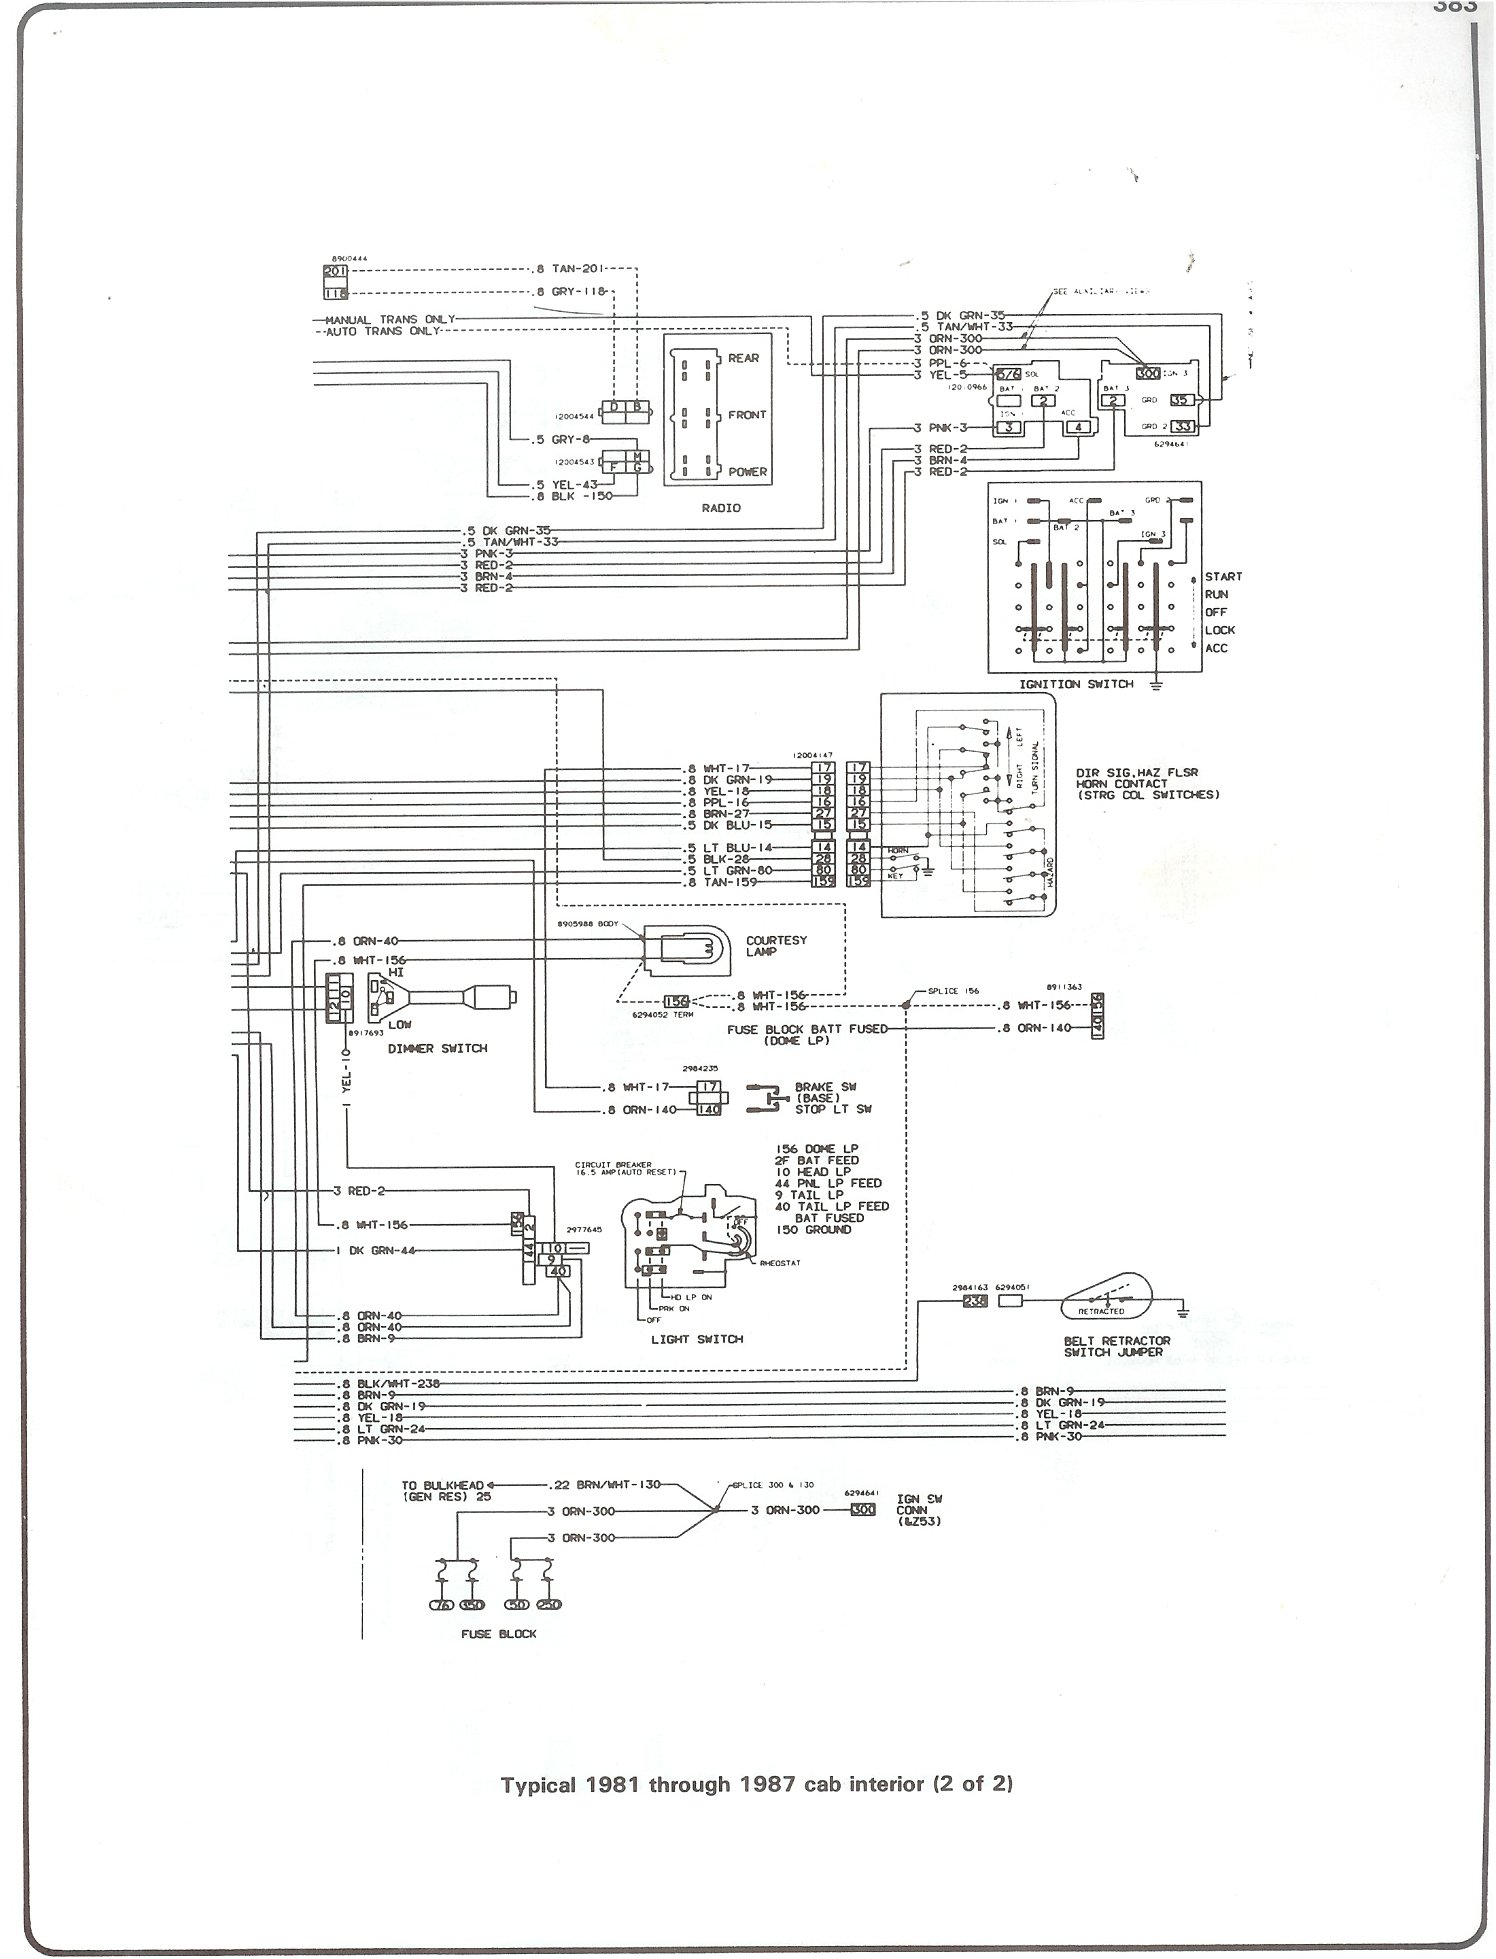 Complete 73 87 Wiring Diagrams Ford Ranger Fuse Box Layout 19 99 Show 81 Cab Interior Page 2